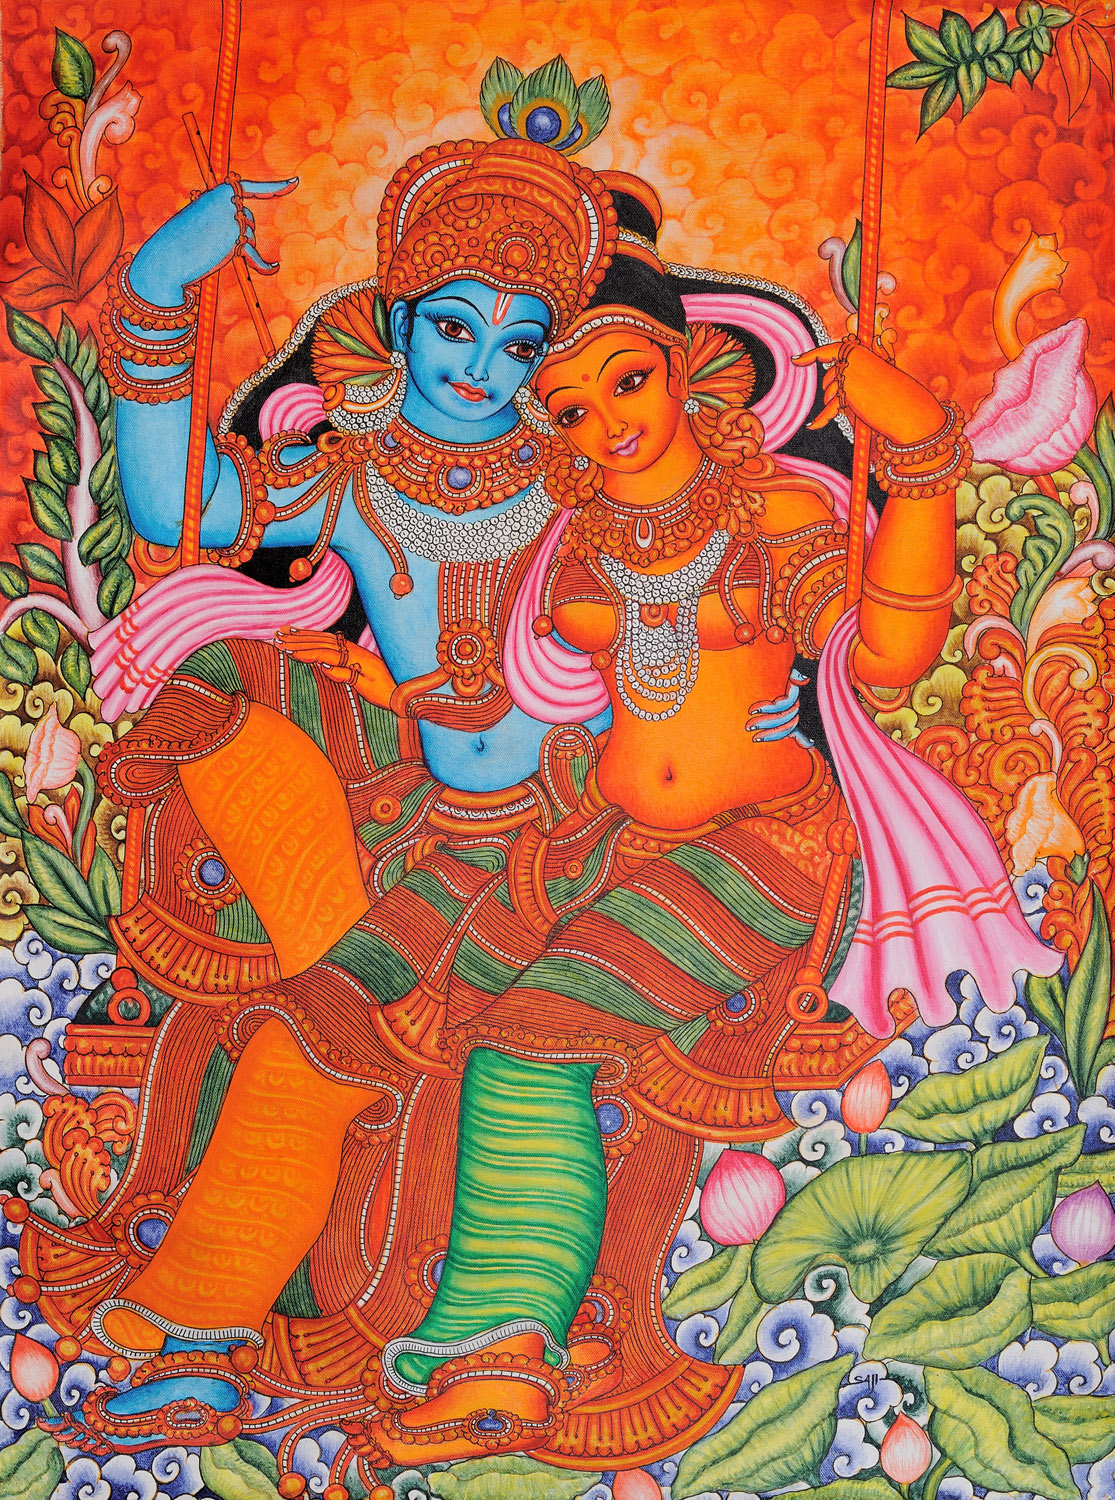 Radha and krishna on swing kerala folk style for Mural art designs